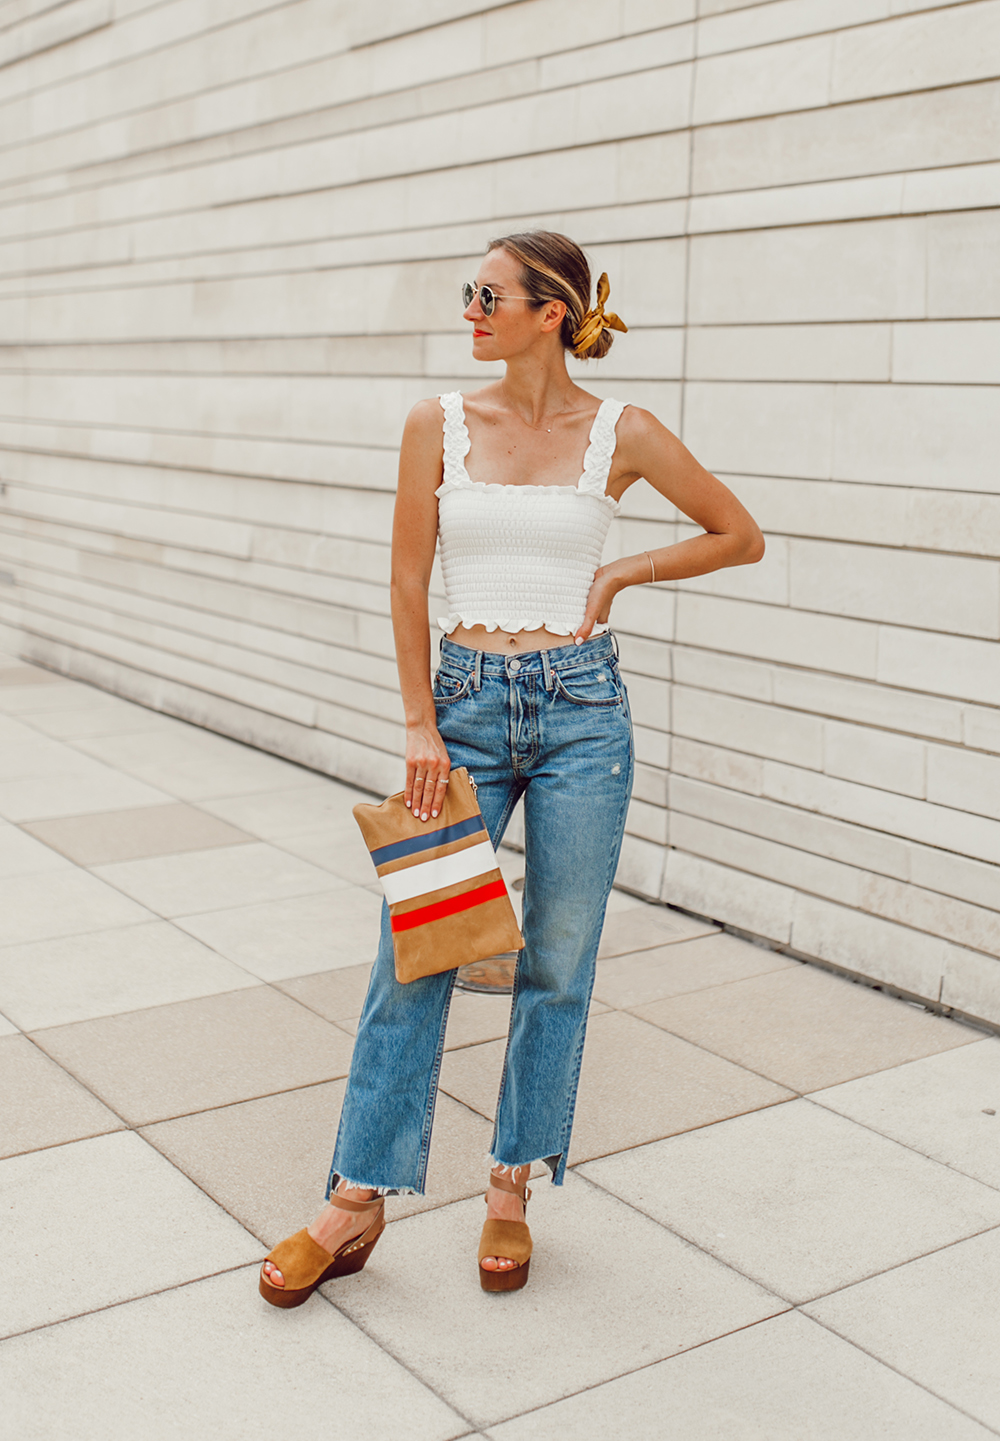 livvyland-blog-olivia-watson-austin-texas-fashion-style-blogger-reformation-tank-top-girlfriend-high-rise-jeans-hair-scarf-summer-outfit-7